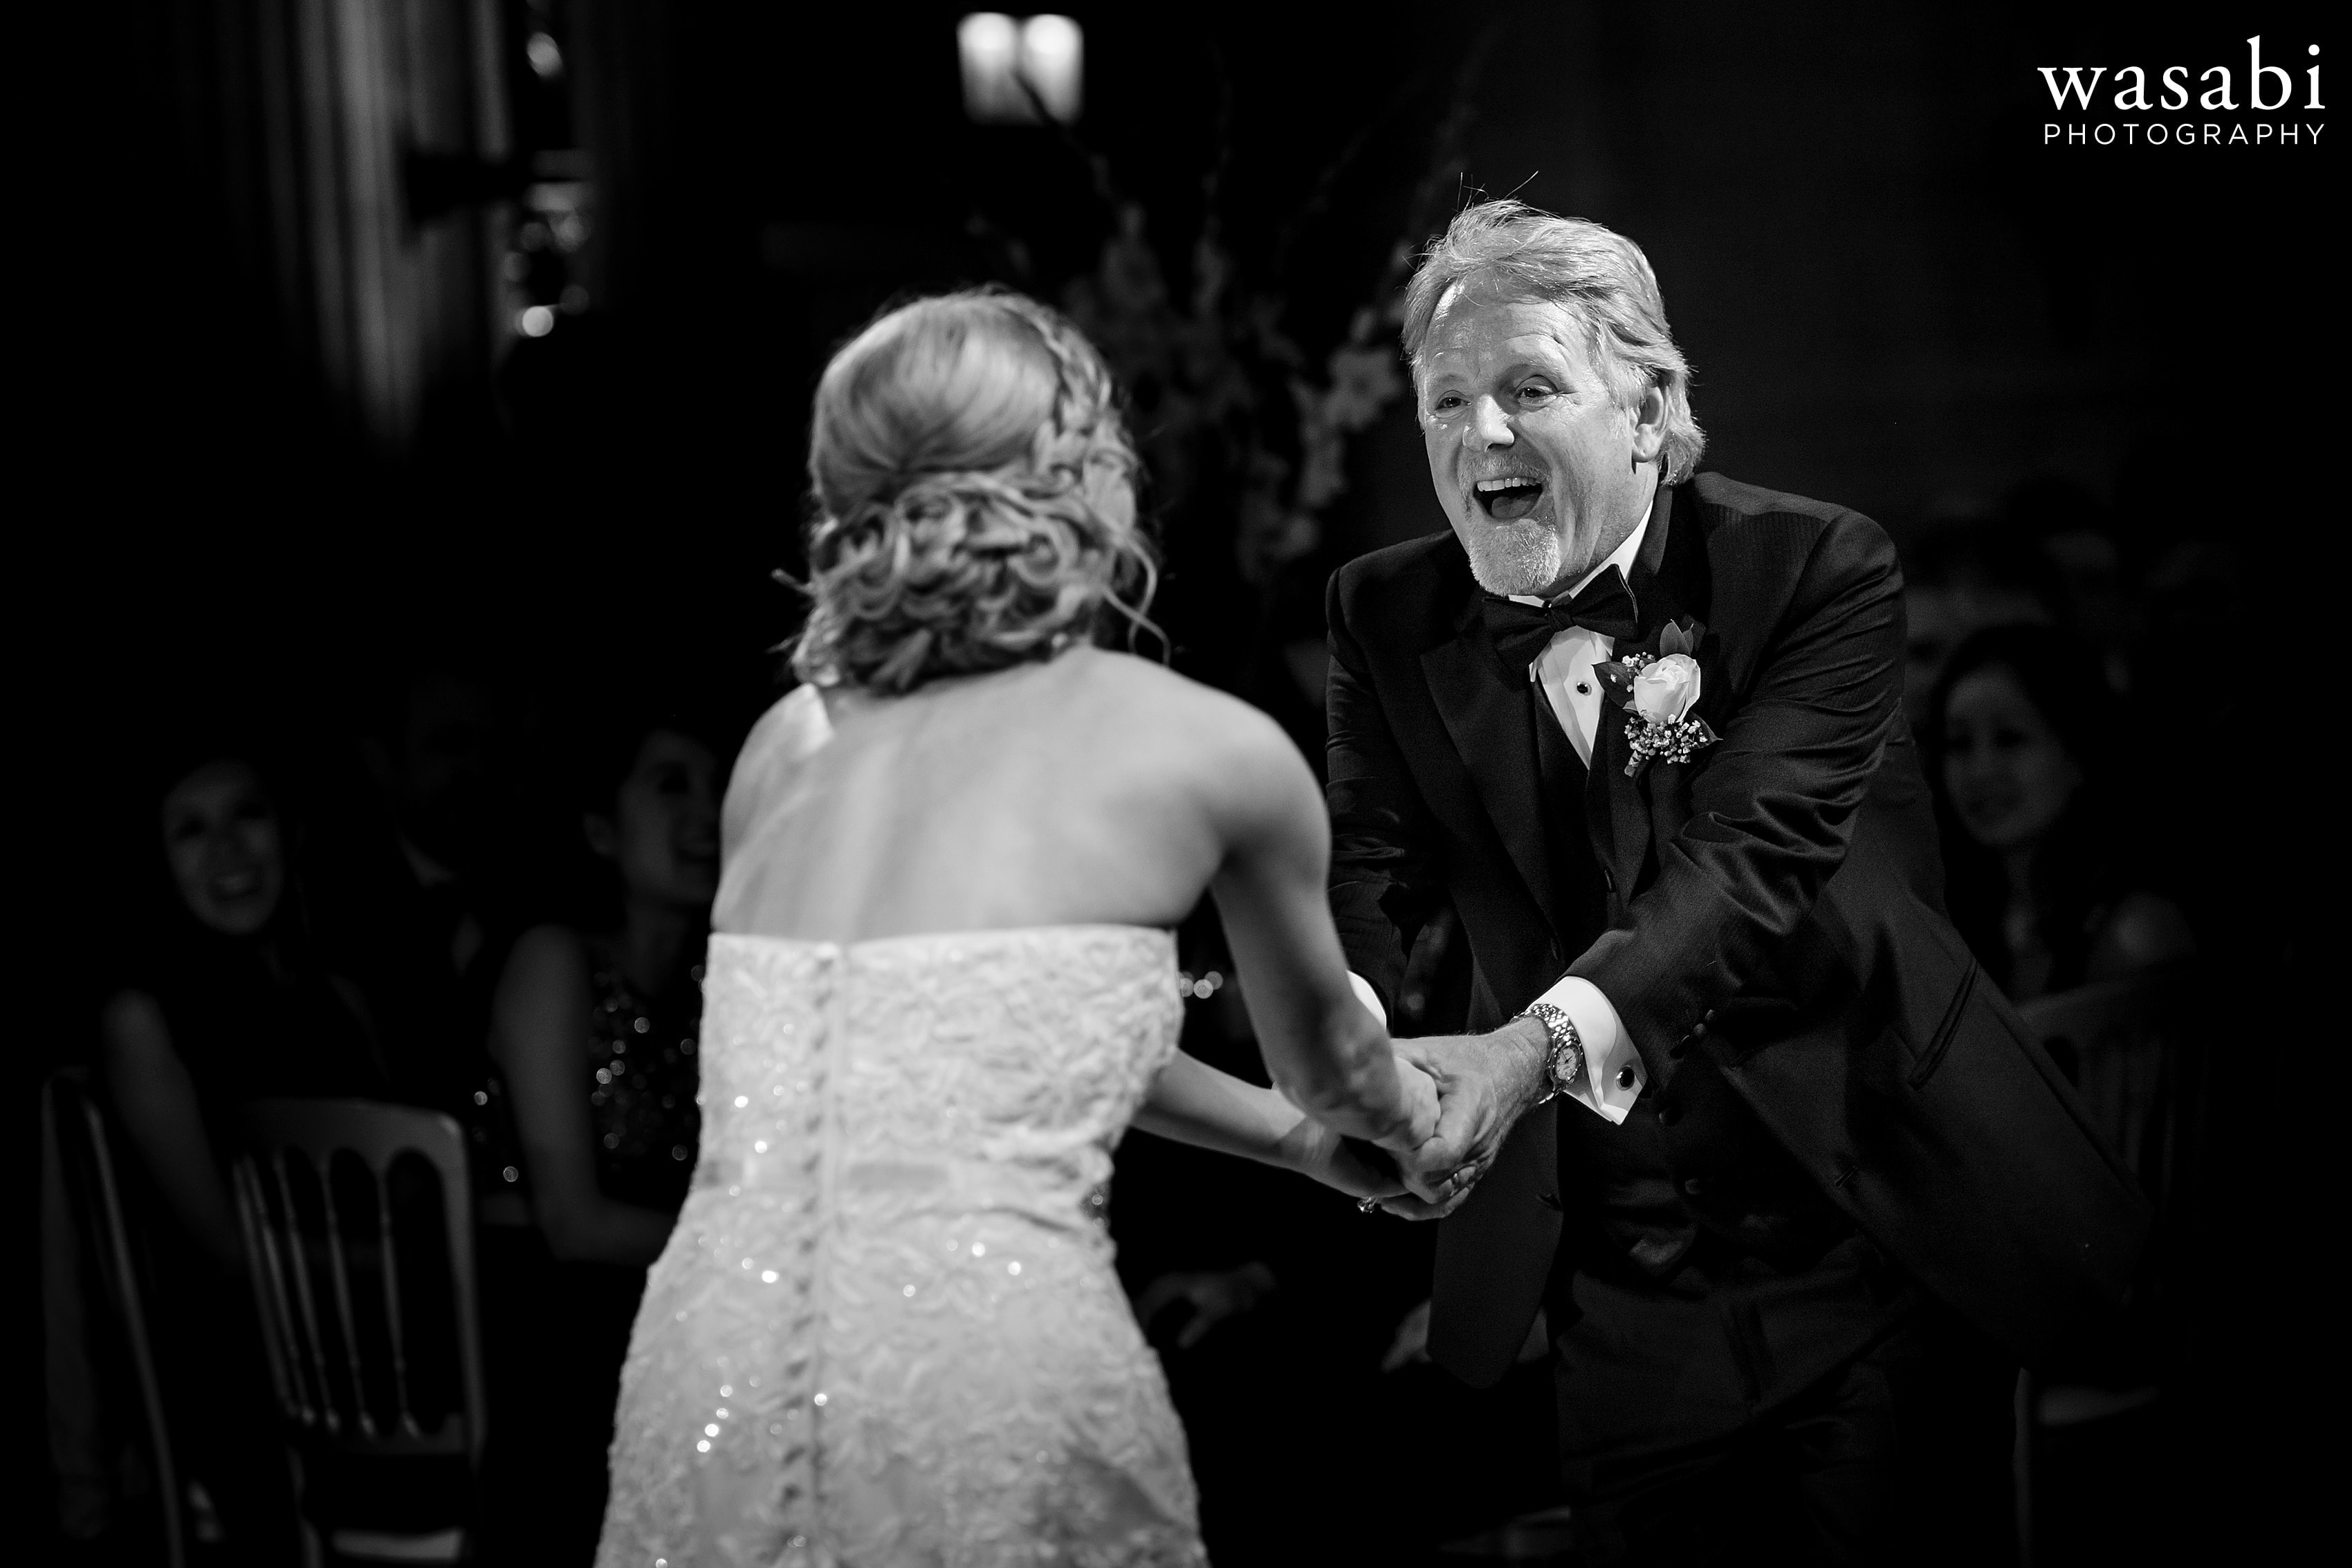 Bride dances with dad during father daughter first dance at Civic Opera House wedding reception